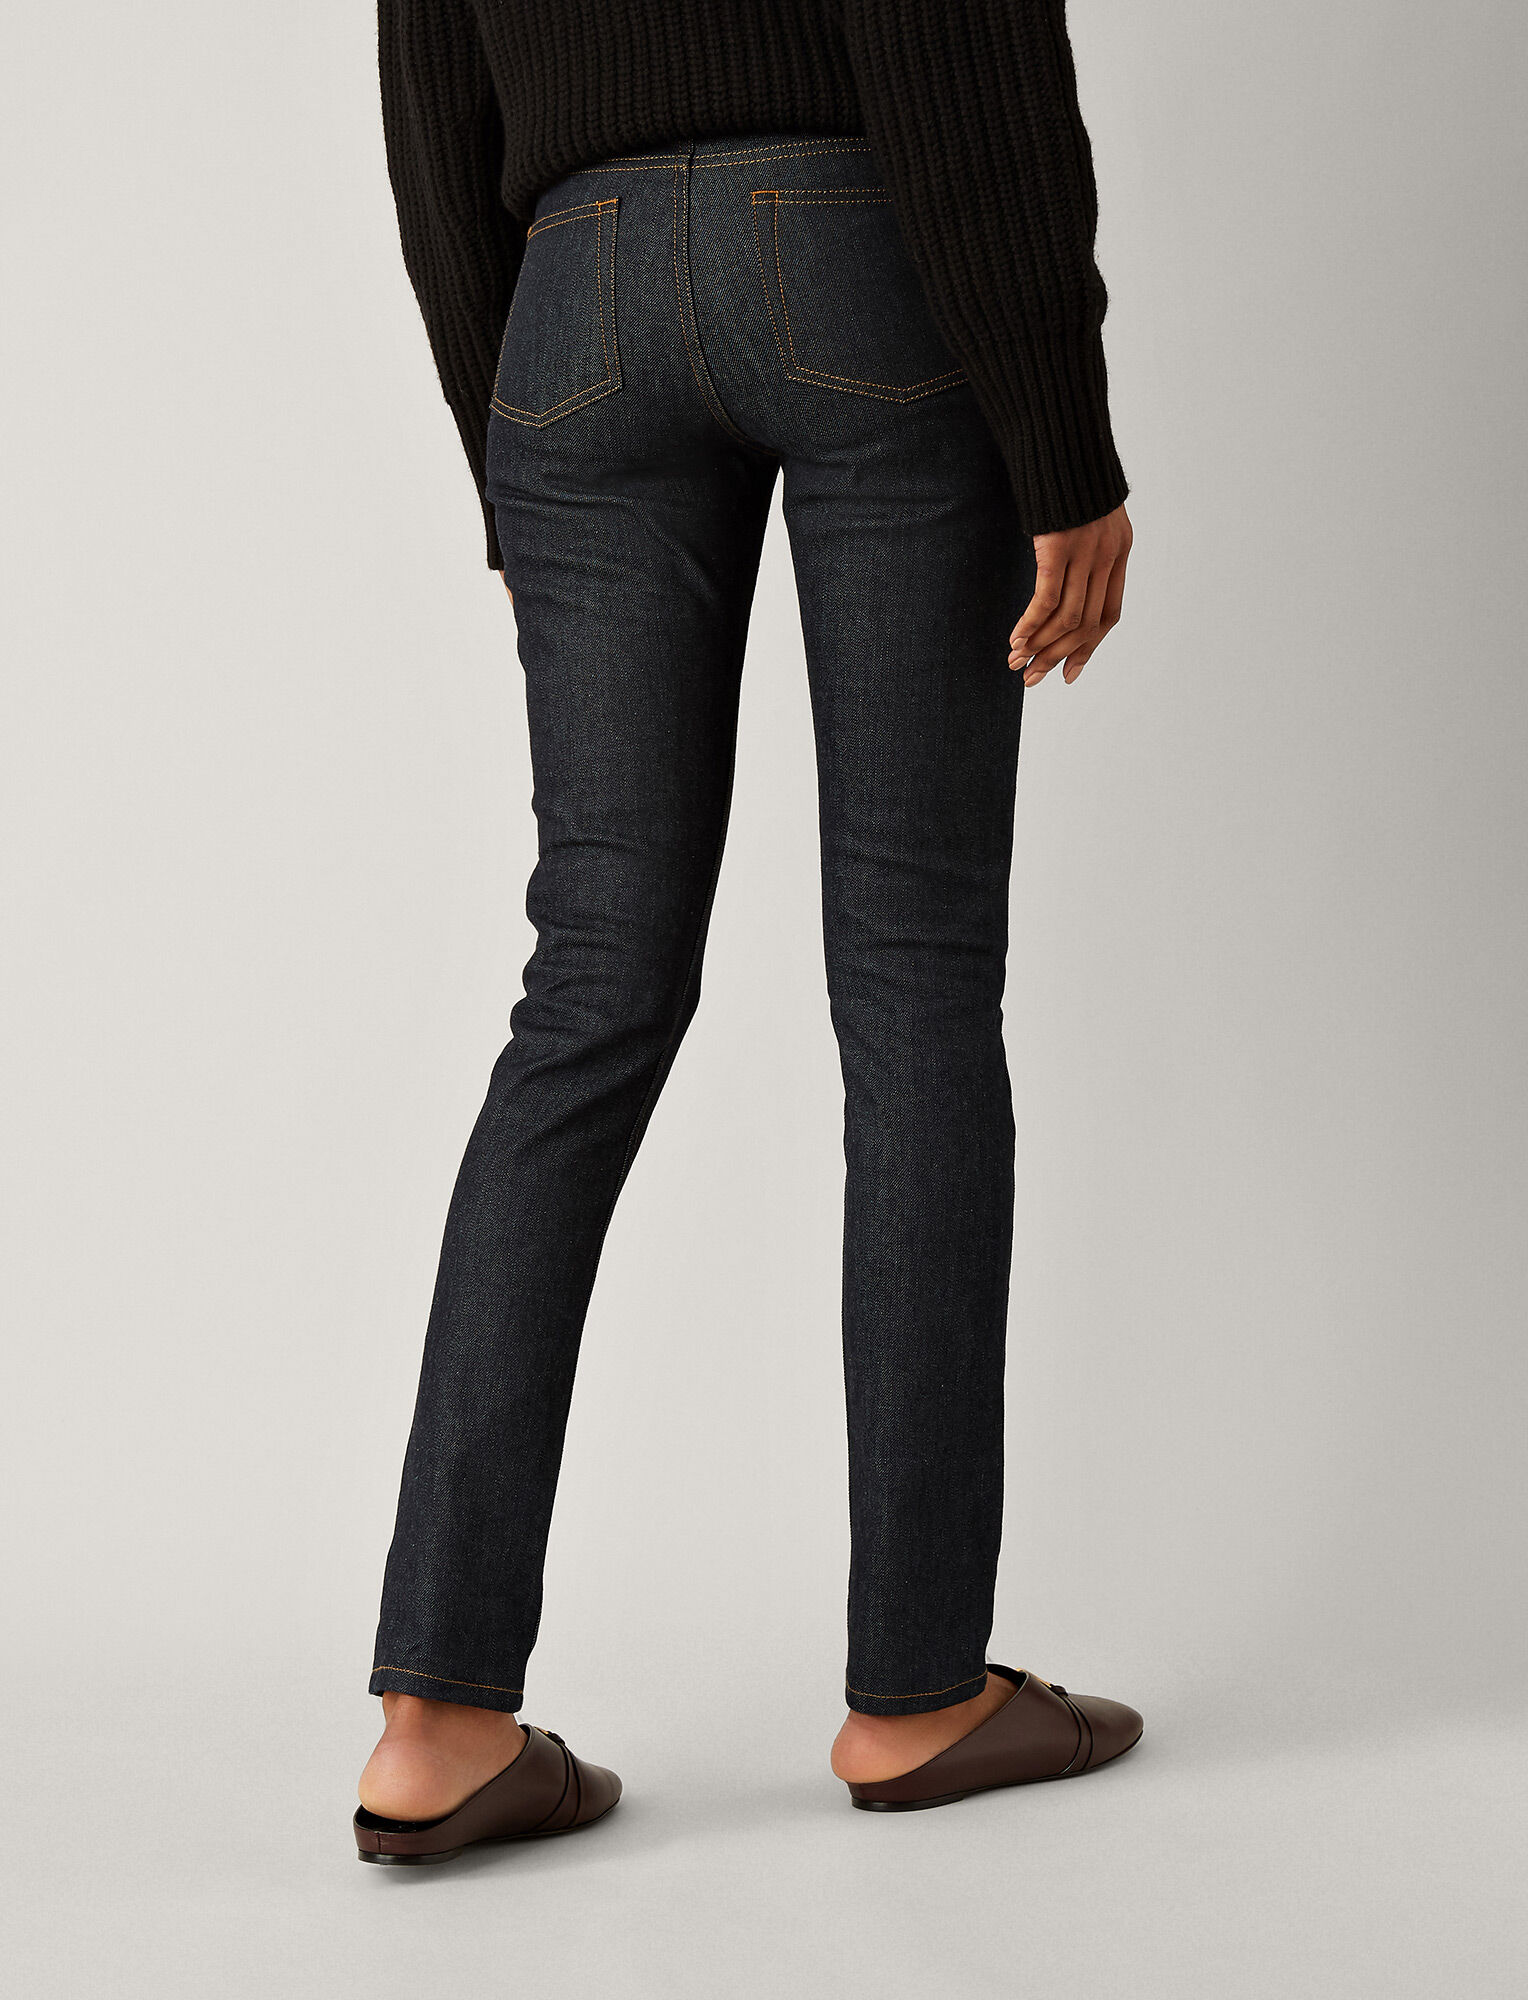 Joseph, Cloud Denim Stretch Trousers, in PURE INDIGO